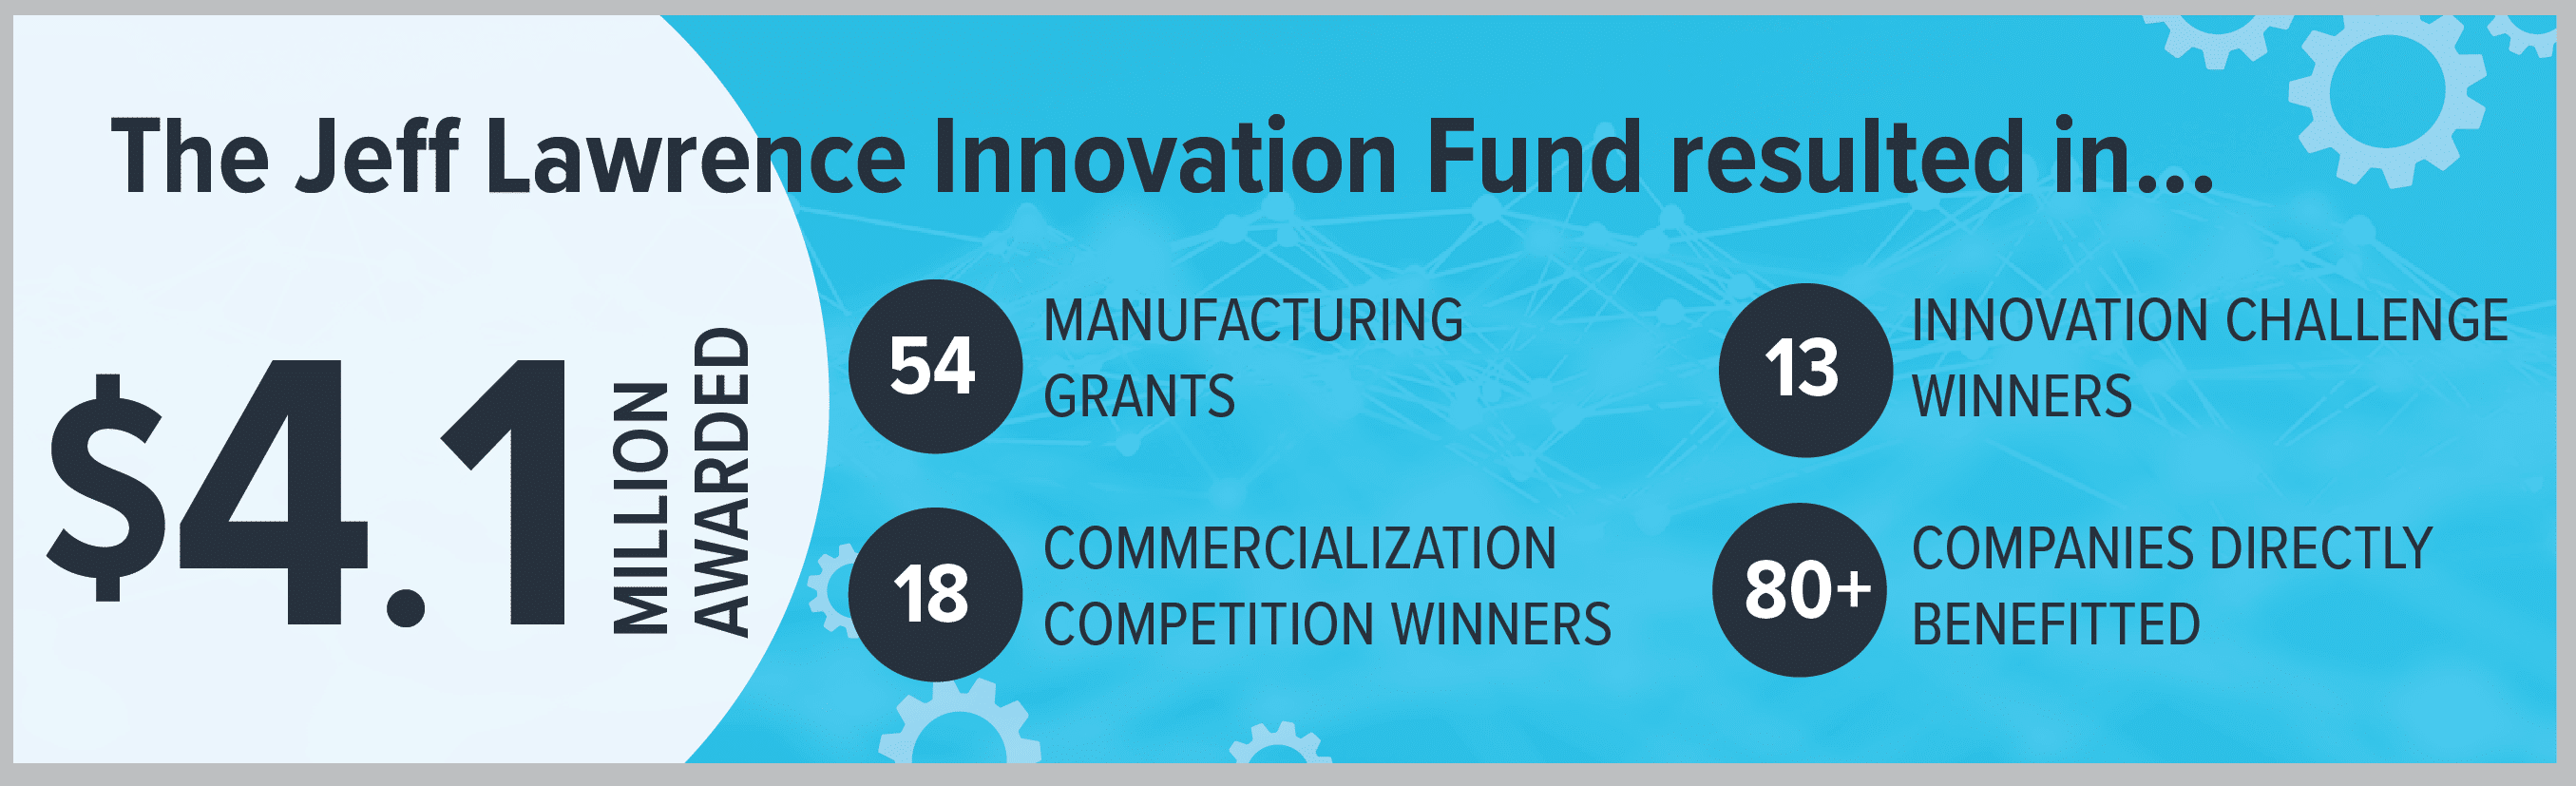 The Jeff Lawrence Innovation Fund Numbers